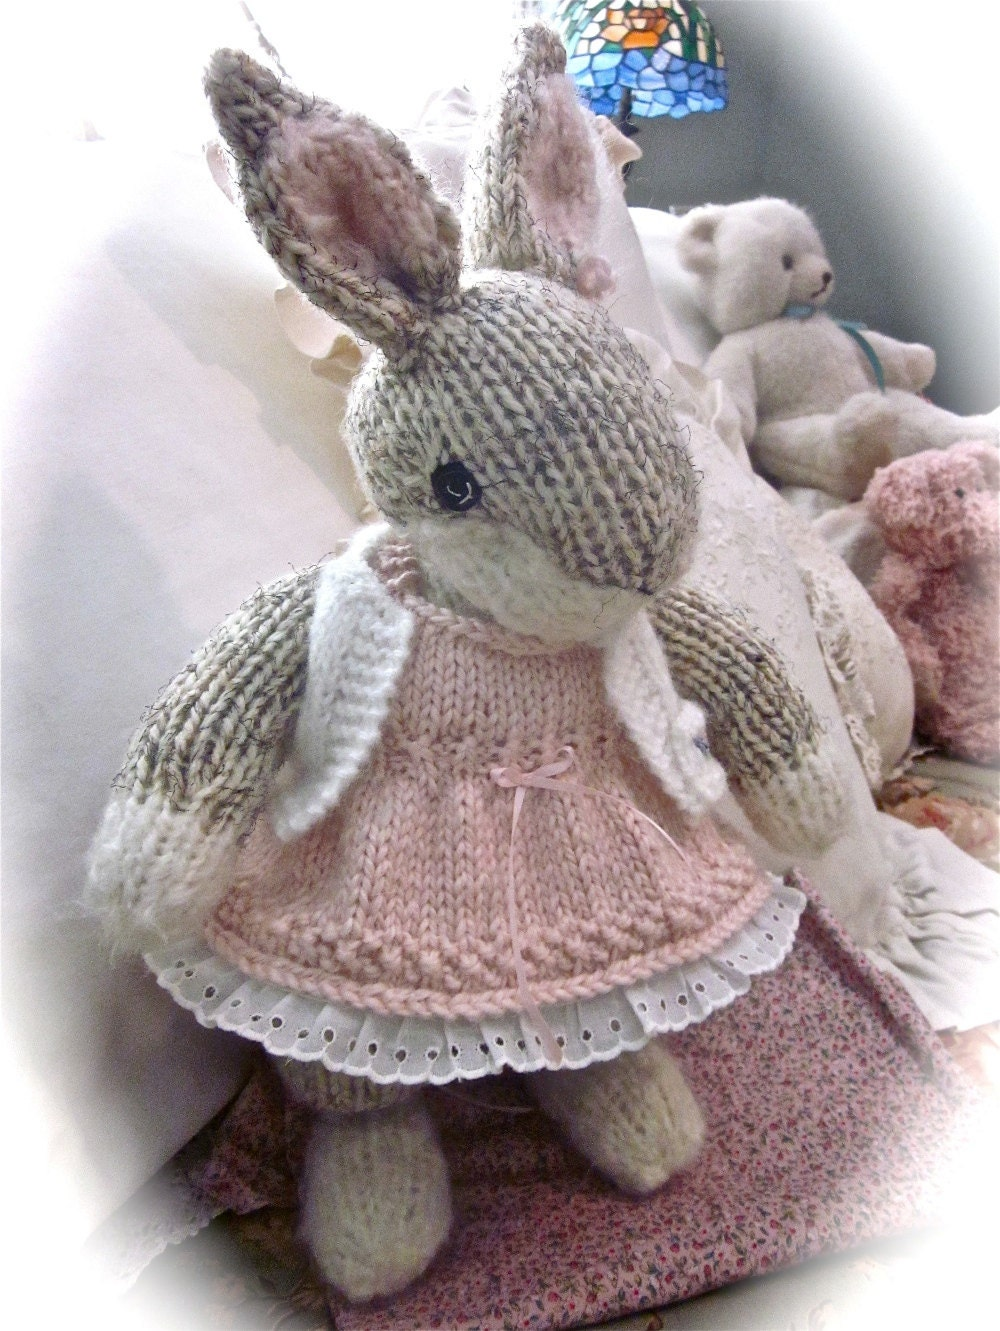 Knitting Stuffed Animals : Knit stuffed animal bunny doll hand and embroidered